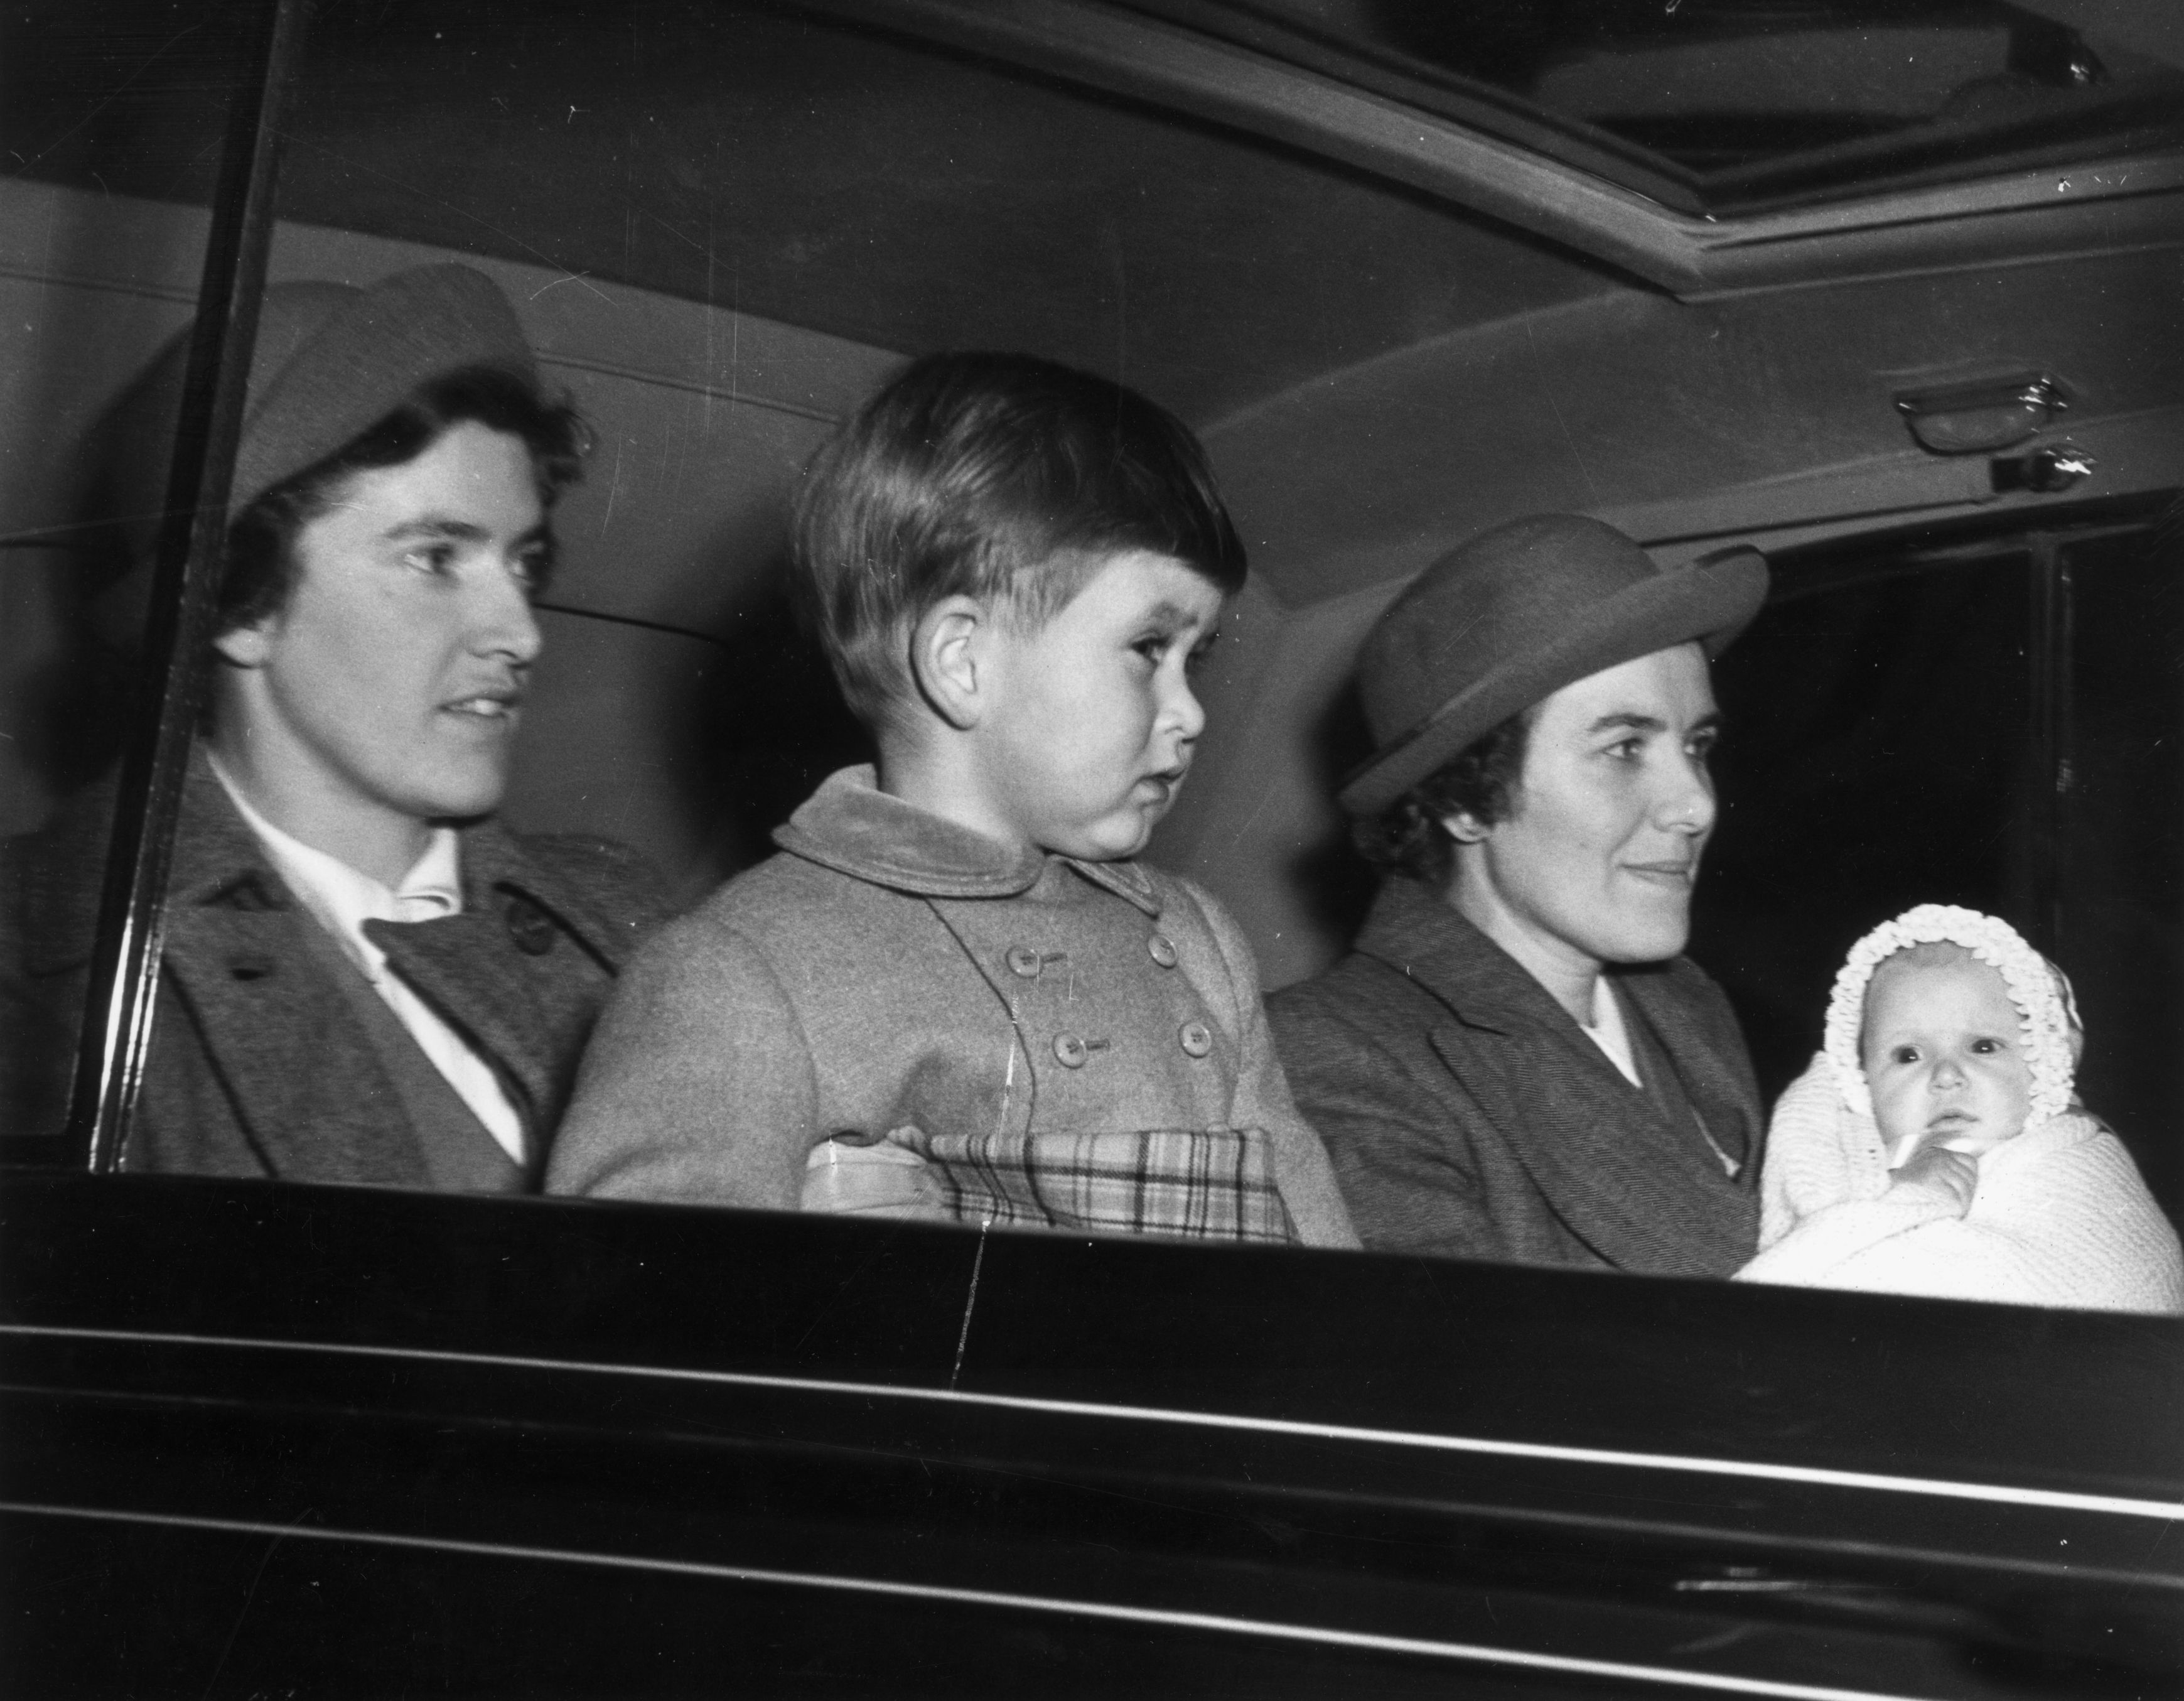 Prince Charles and Princess Anne in the company of their nurses in 1950. They are on their way to Sandringham to spend Christmas with their grandparents, King George VI and Queen Elizabeth.